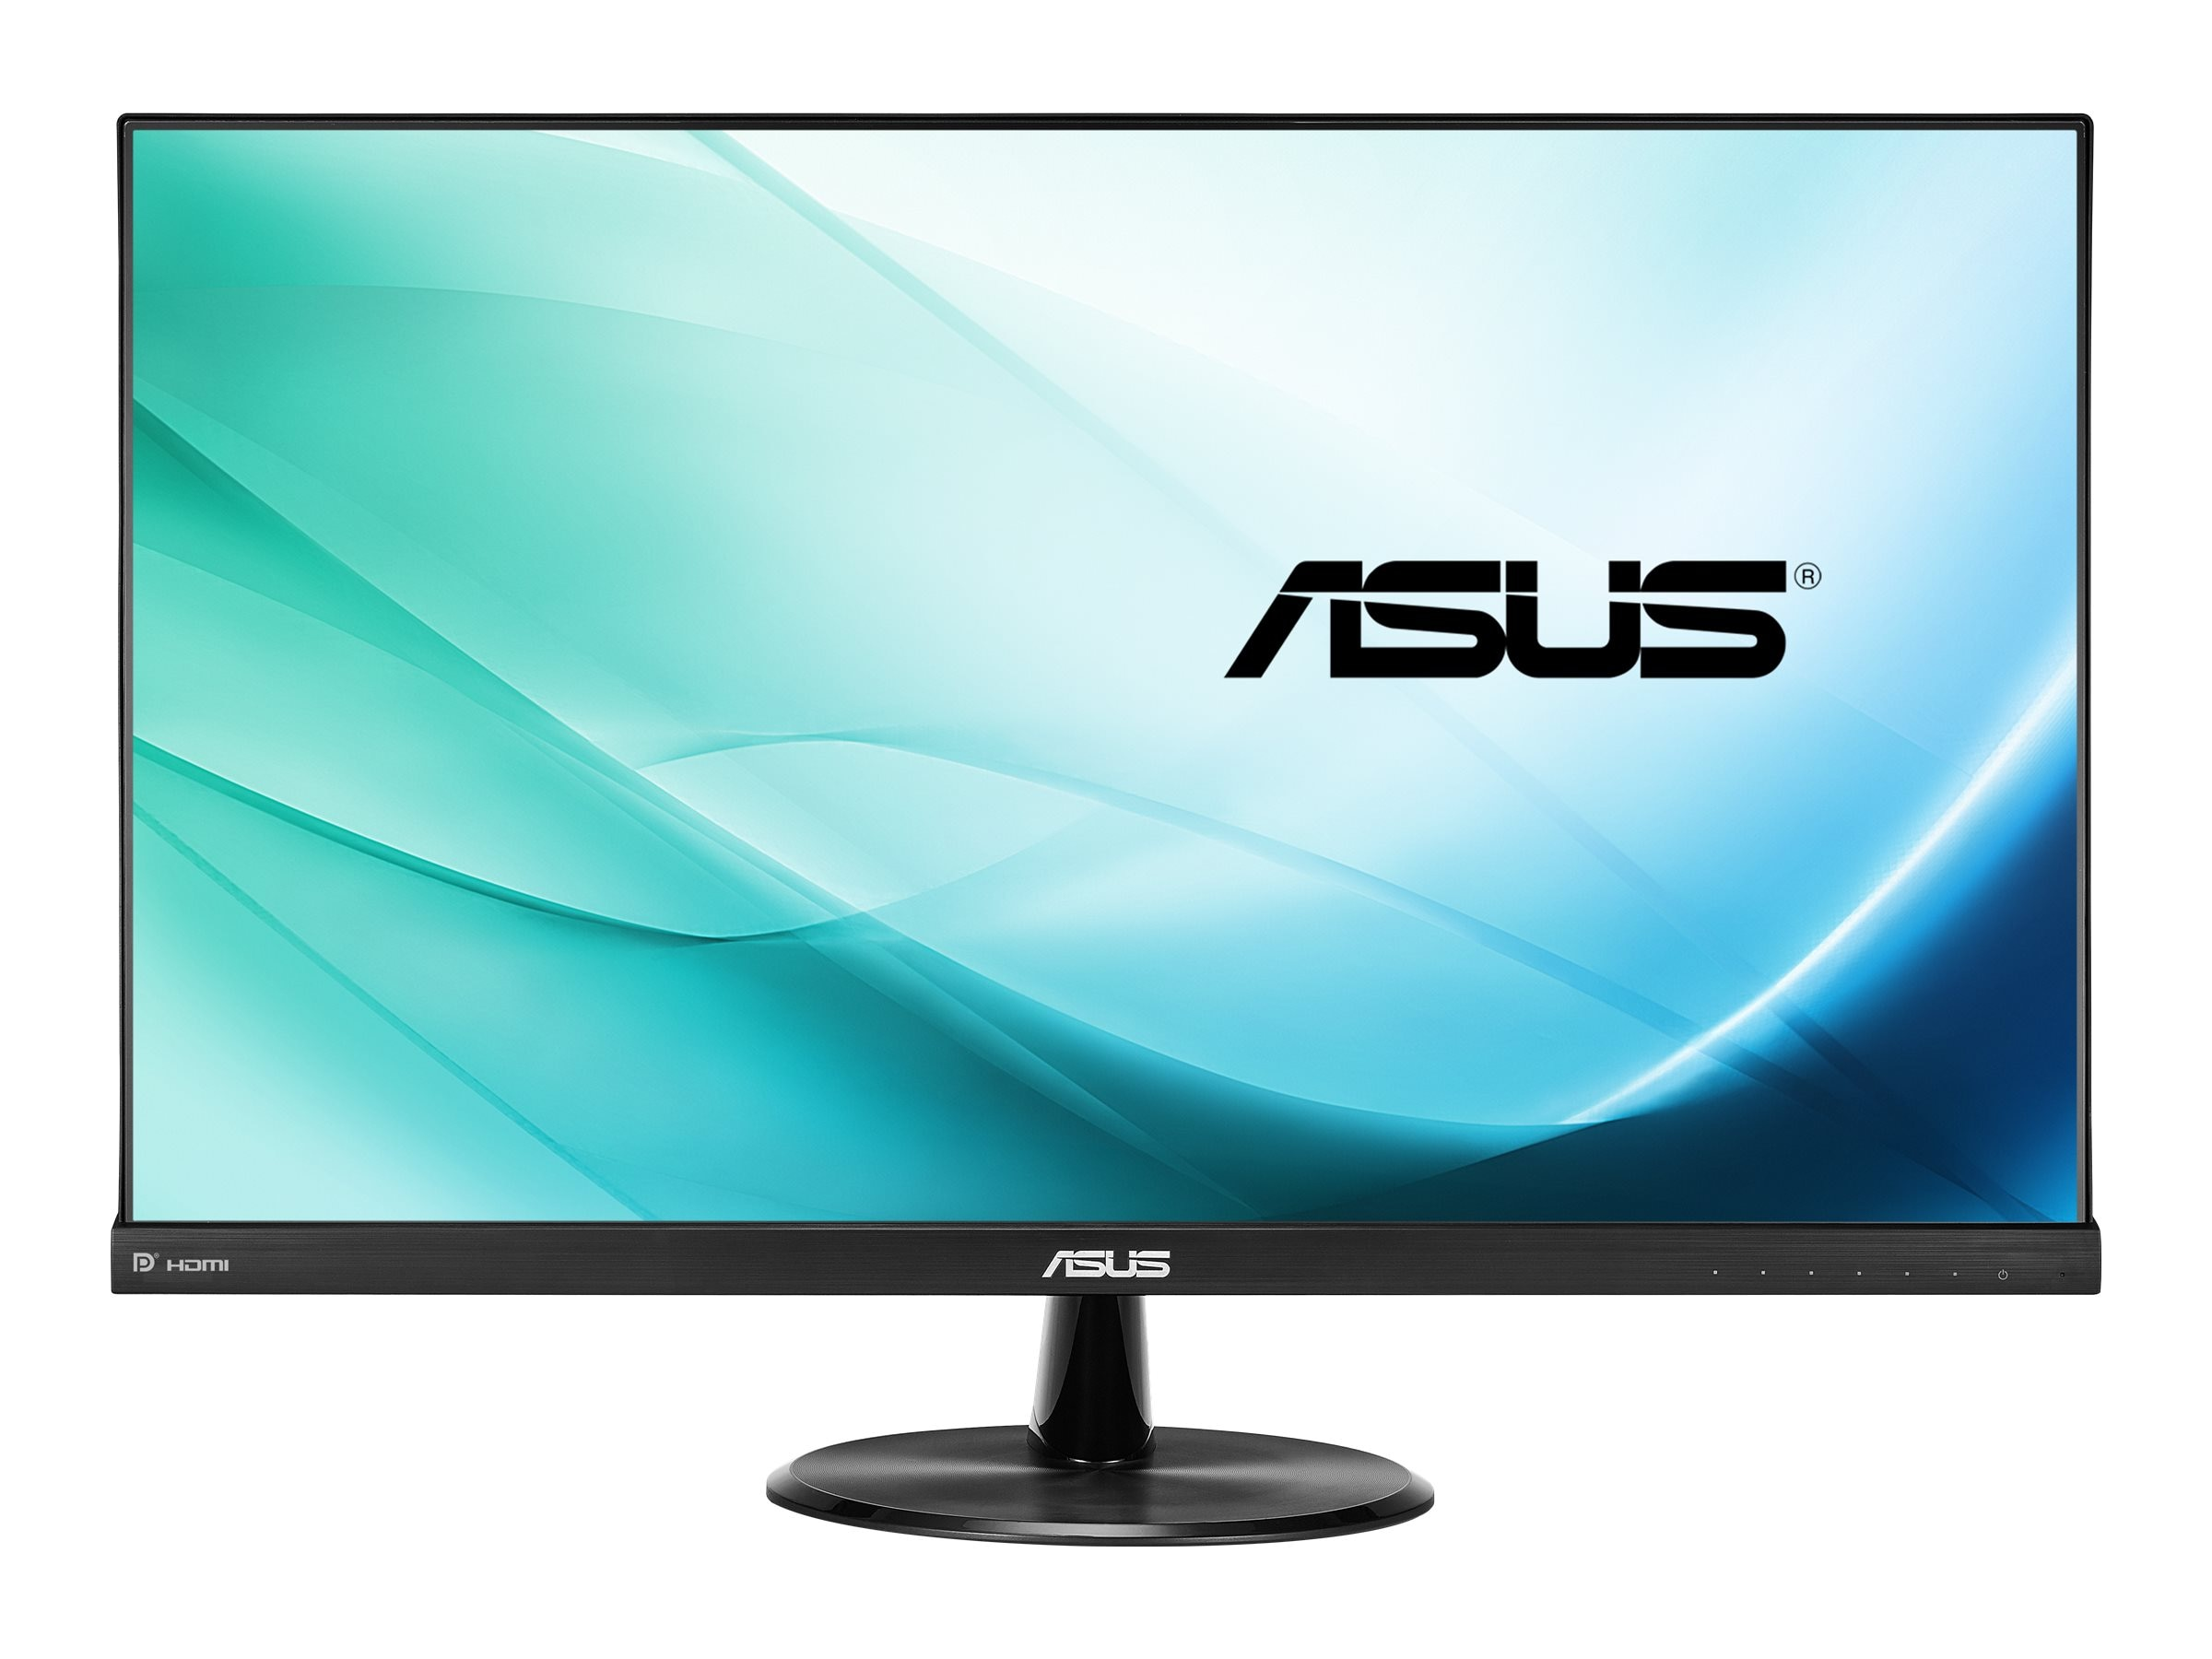 Asus 27 VP279Q-P Full HD LED-LCD Monitor, Black, VP279Q-P, 30866606, Monitors - LED-LCD